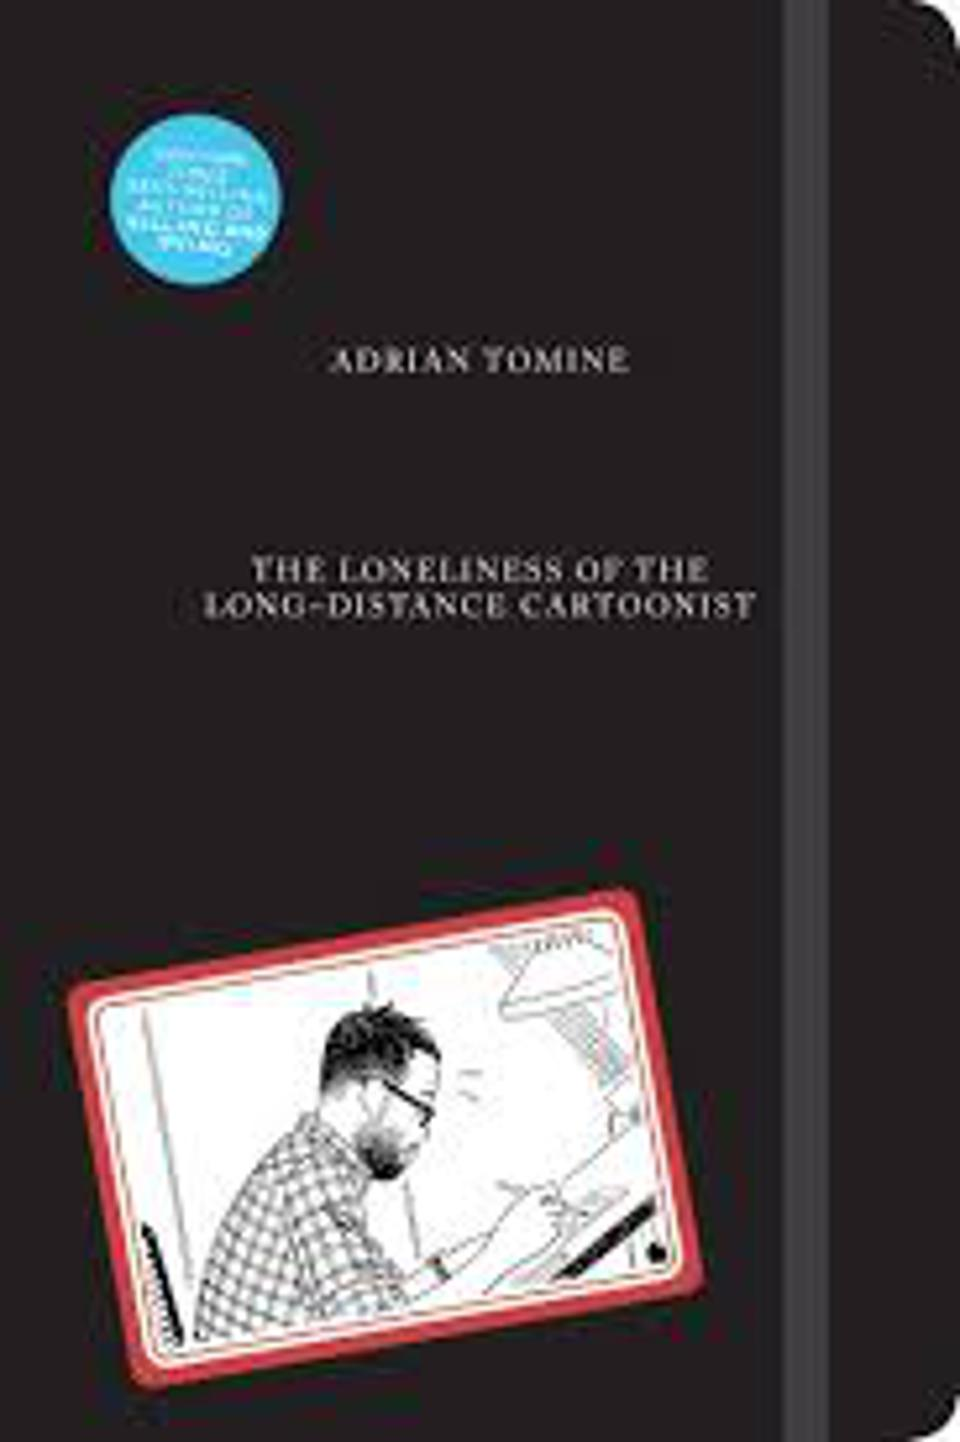 Cover to Adrian Tomine graphic novel Loneliness of the Long Distance Cartoonist